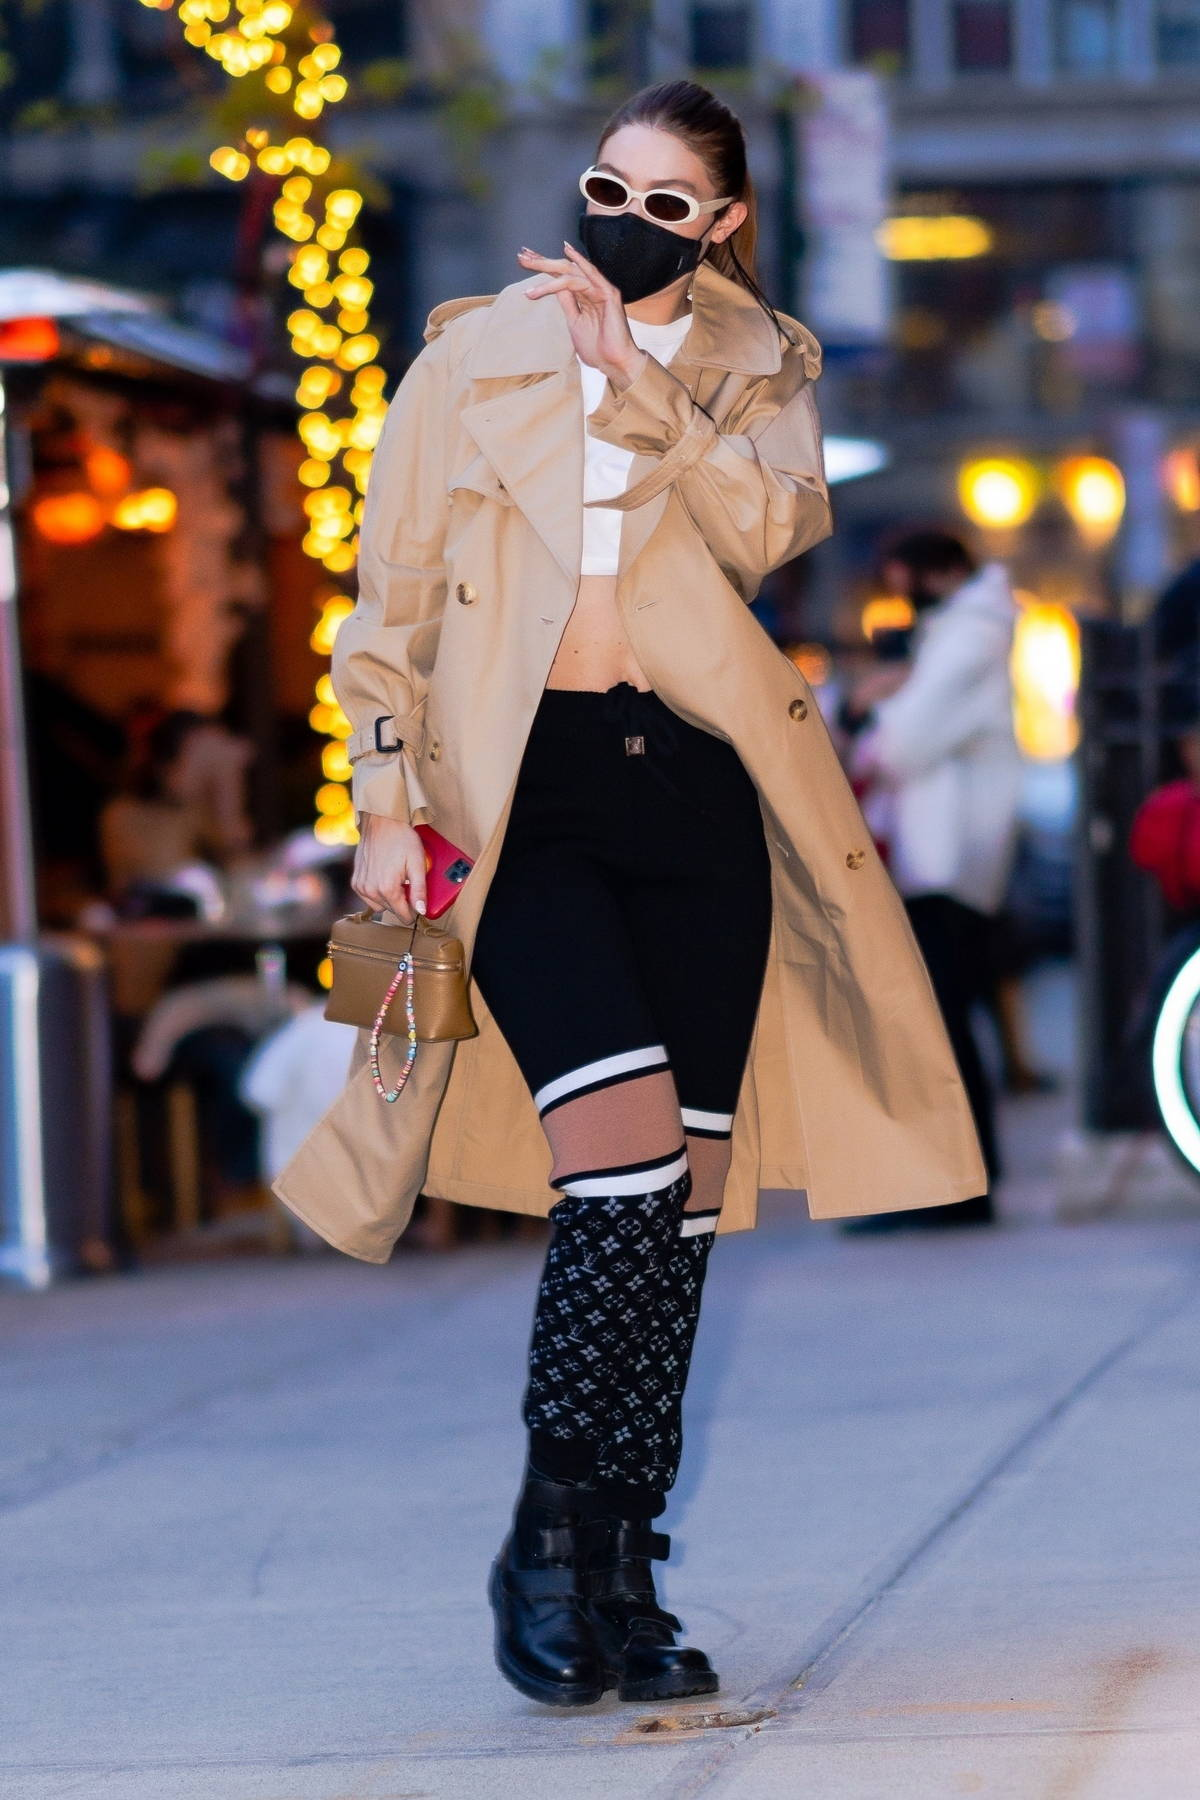 Gigi Hadid waves for the camera as she returns home from a day shooting for Maybelline in New York City